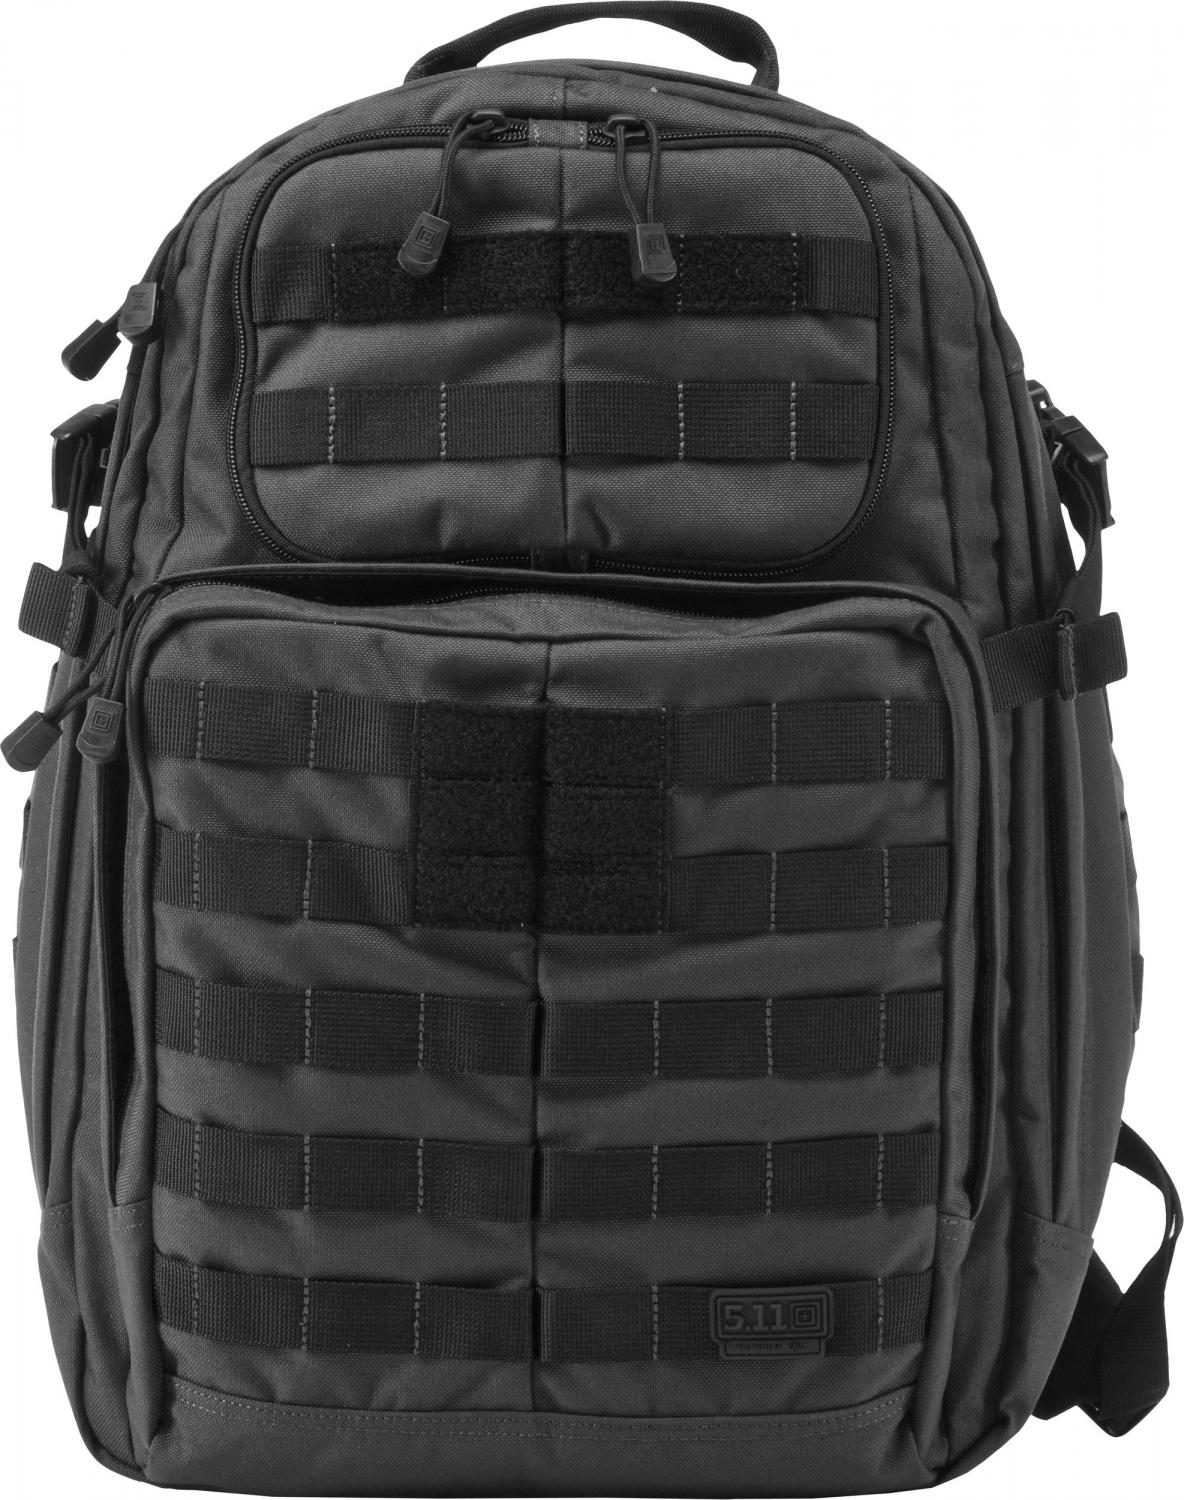 528942c797 5.11 Tactical Rush 24 Backpack Review